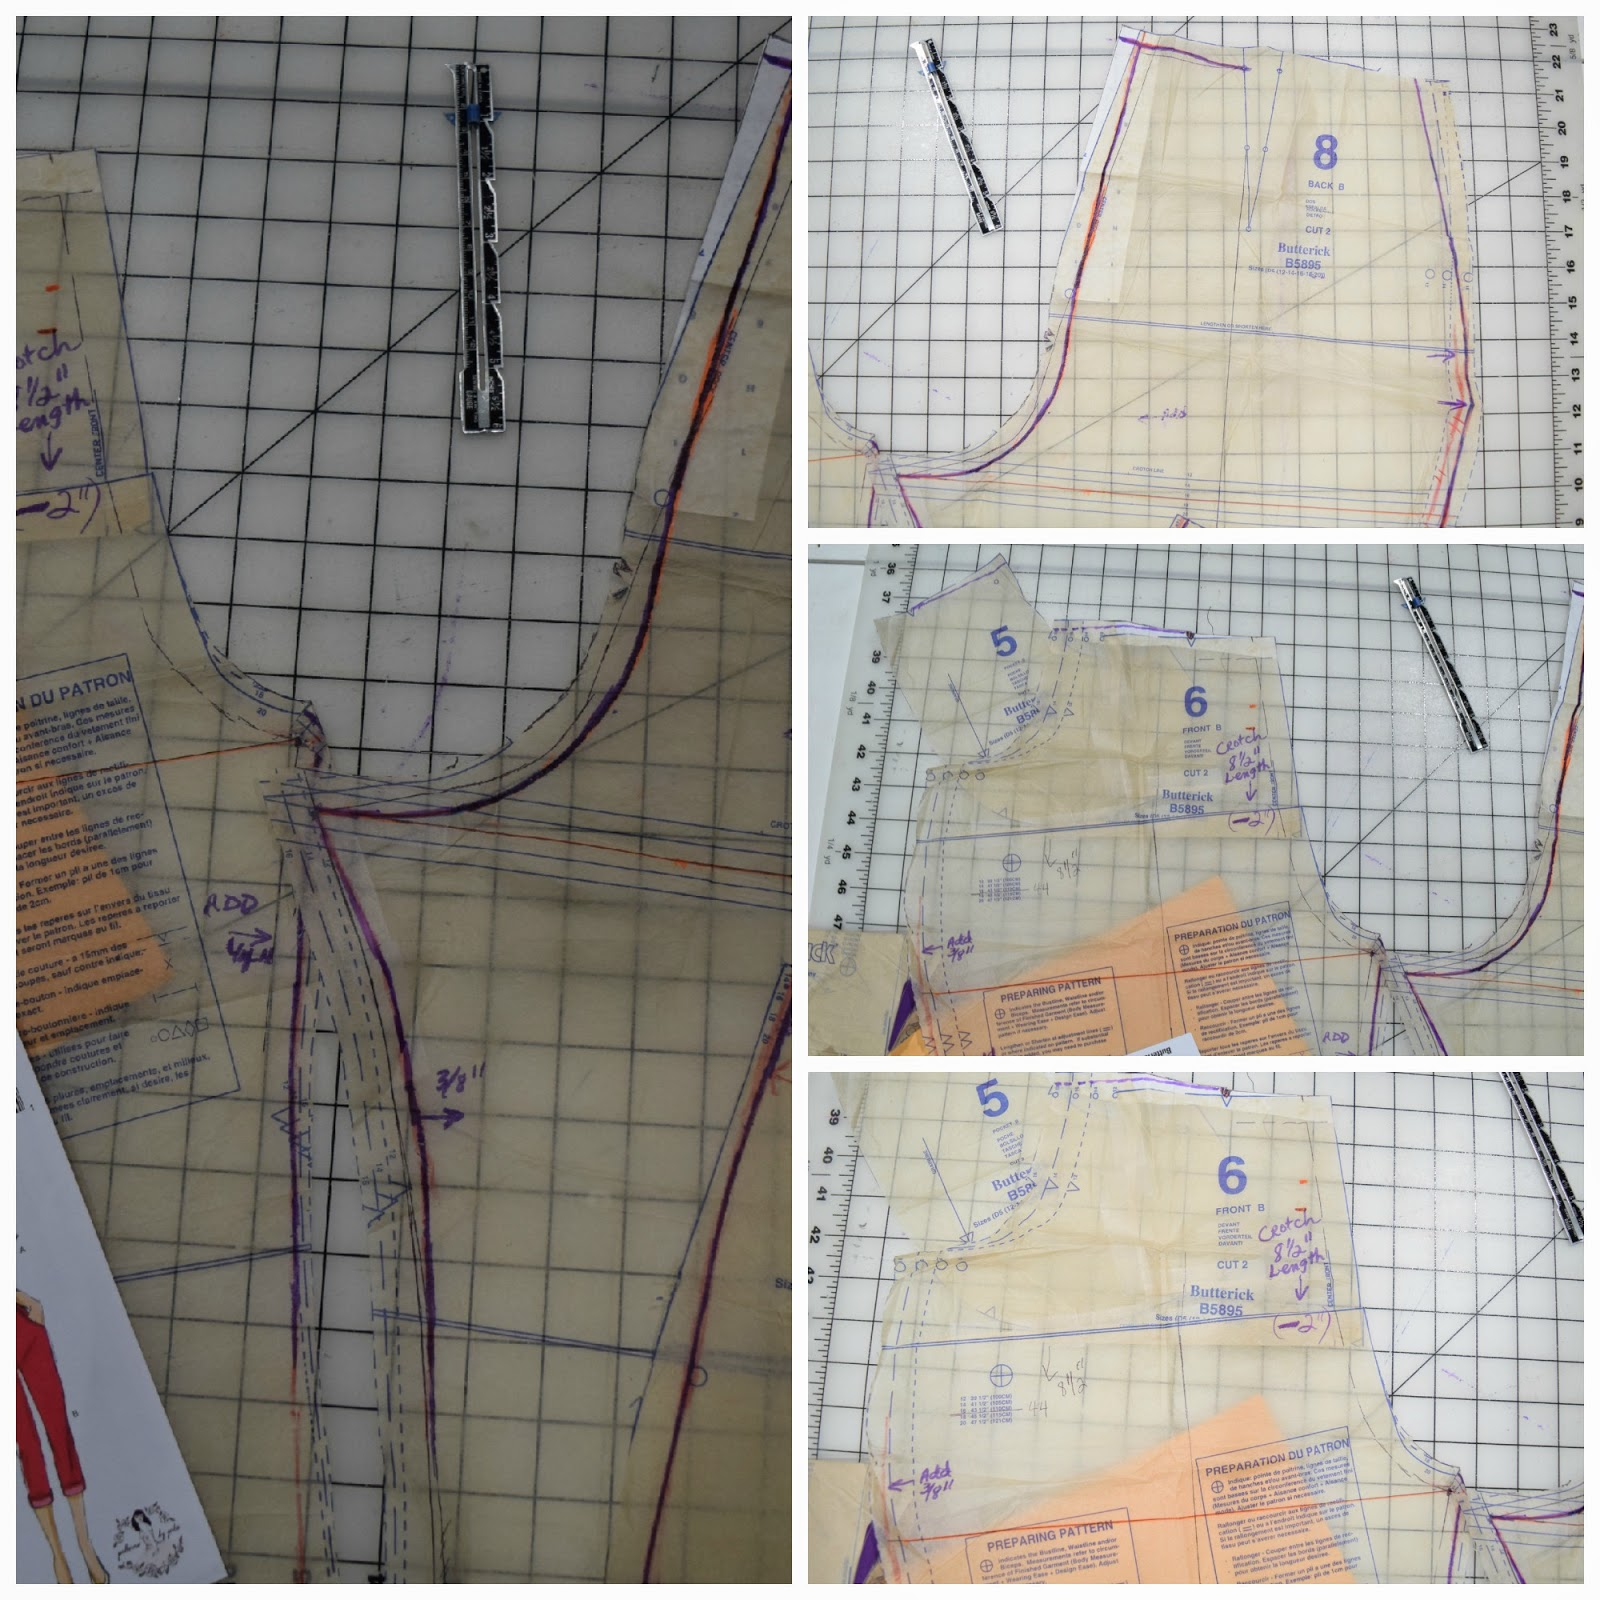 These alterations were completed on Butterick 5895